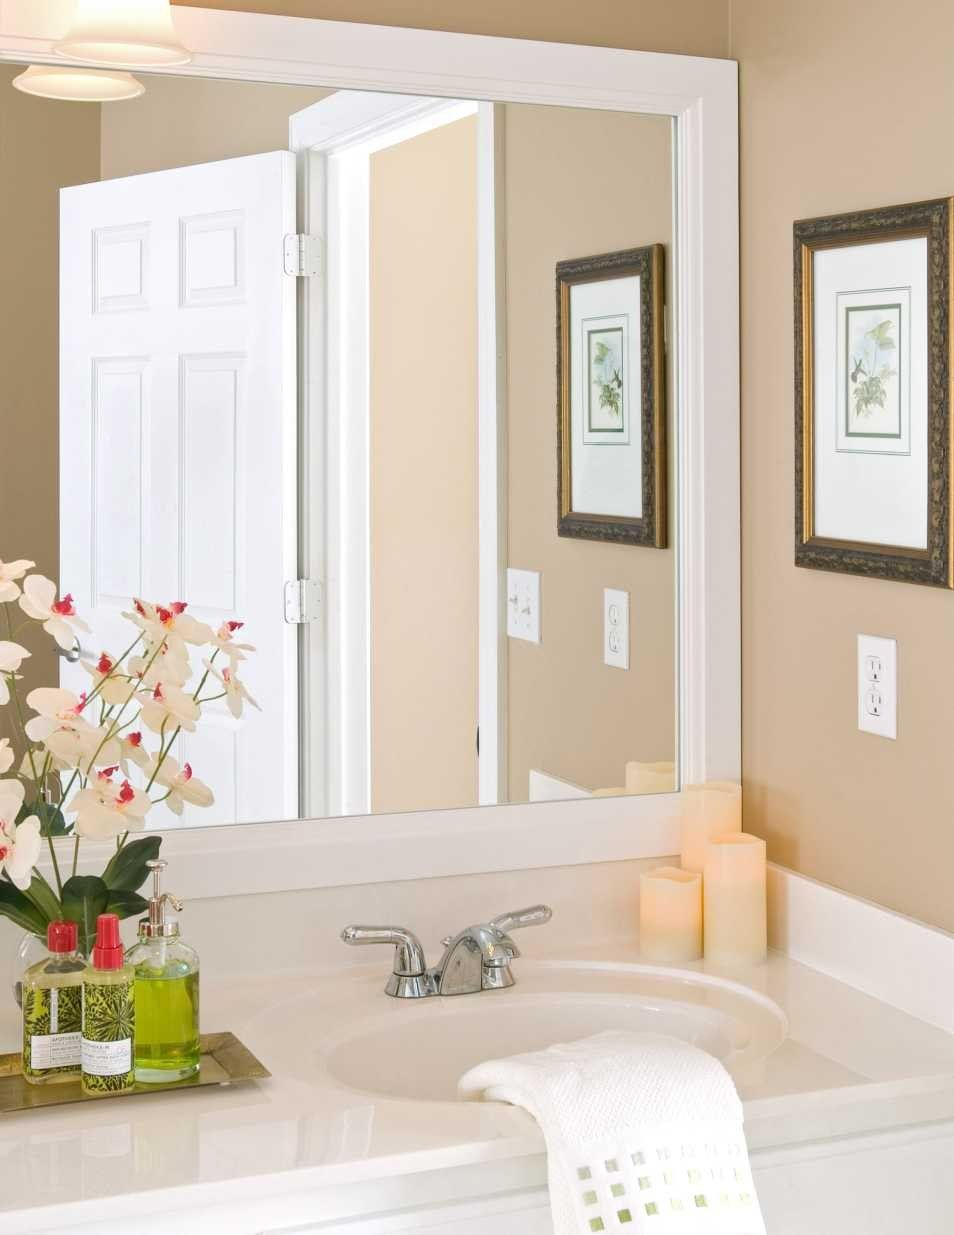 Brown Framed Bathroom Mirrors white framed bathroom mirrors | mirrors | pinterest | frame